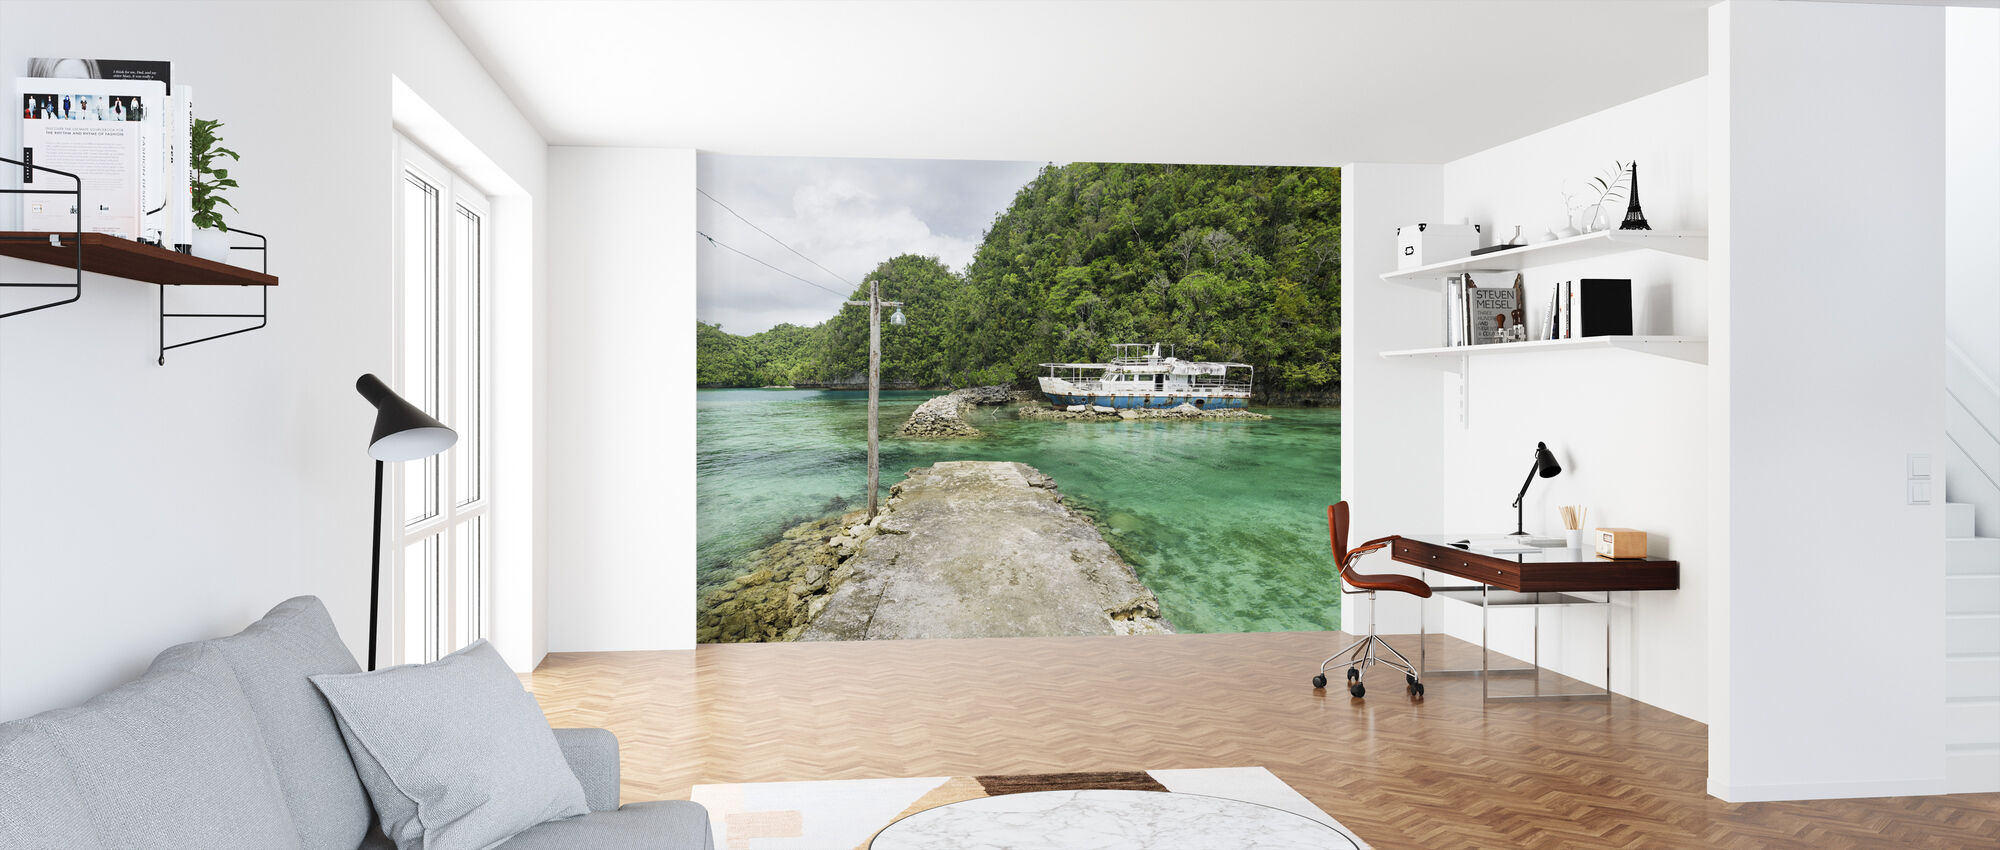 Crystal Clear Waters of Bucas Grande - Wallpaper - Office